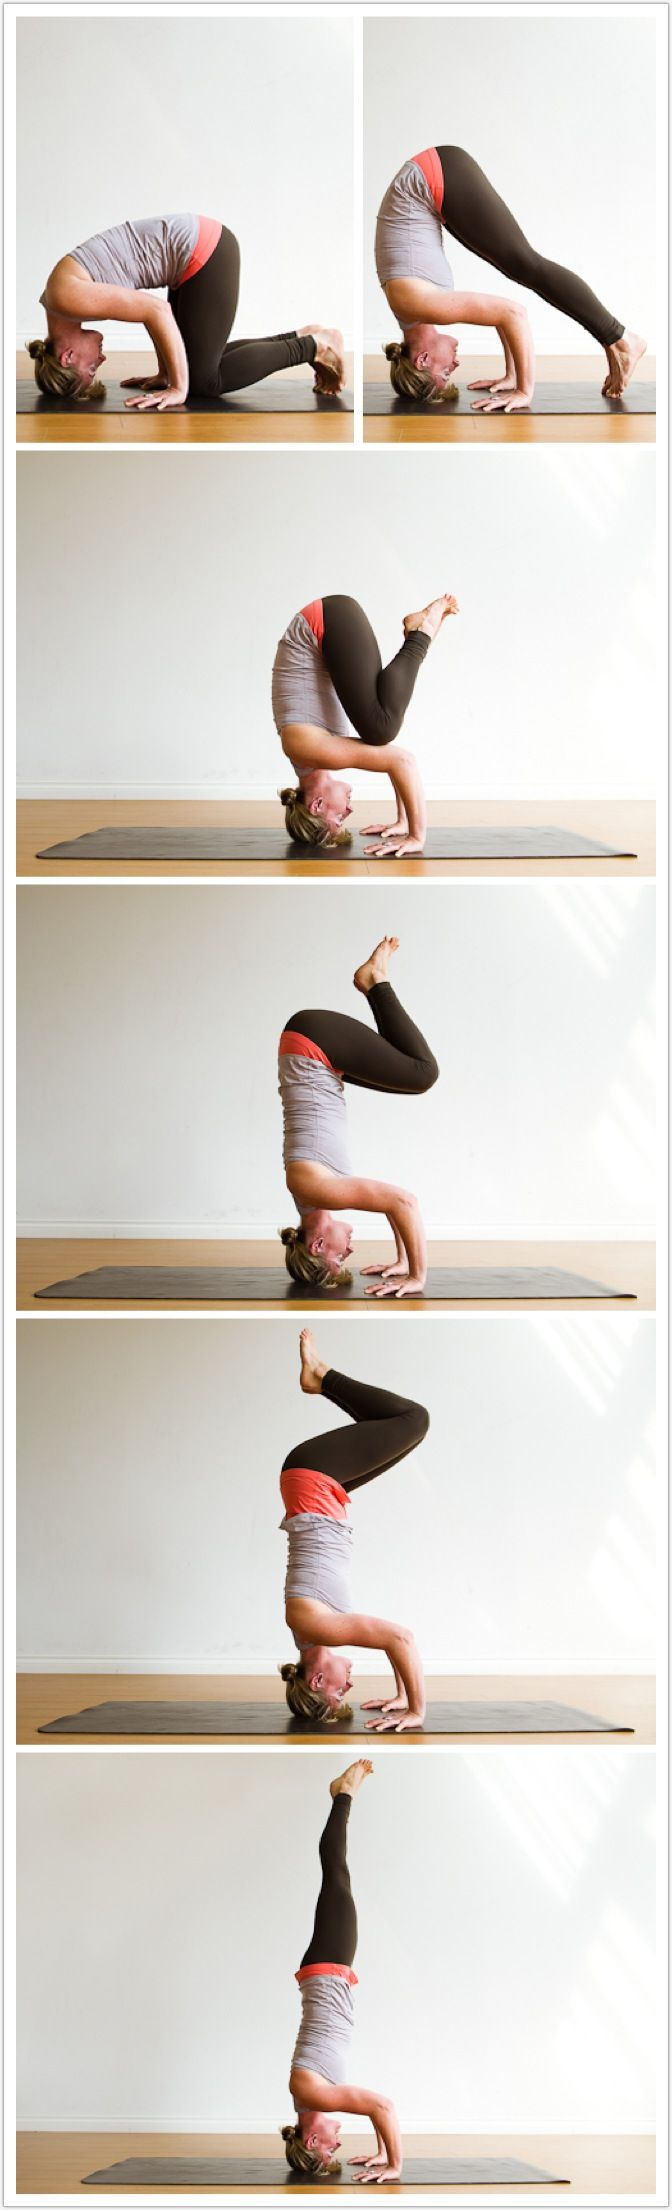 Here are the steps into a headstand. Getting to the third one can take beginners weeks or months. Patience is essential all the way along. (And be sure you can safely roll to your back if you lose control.) I prefer the tripod base, by the way, although t